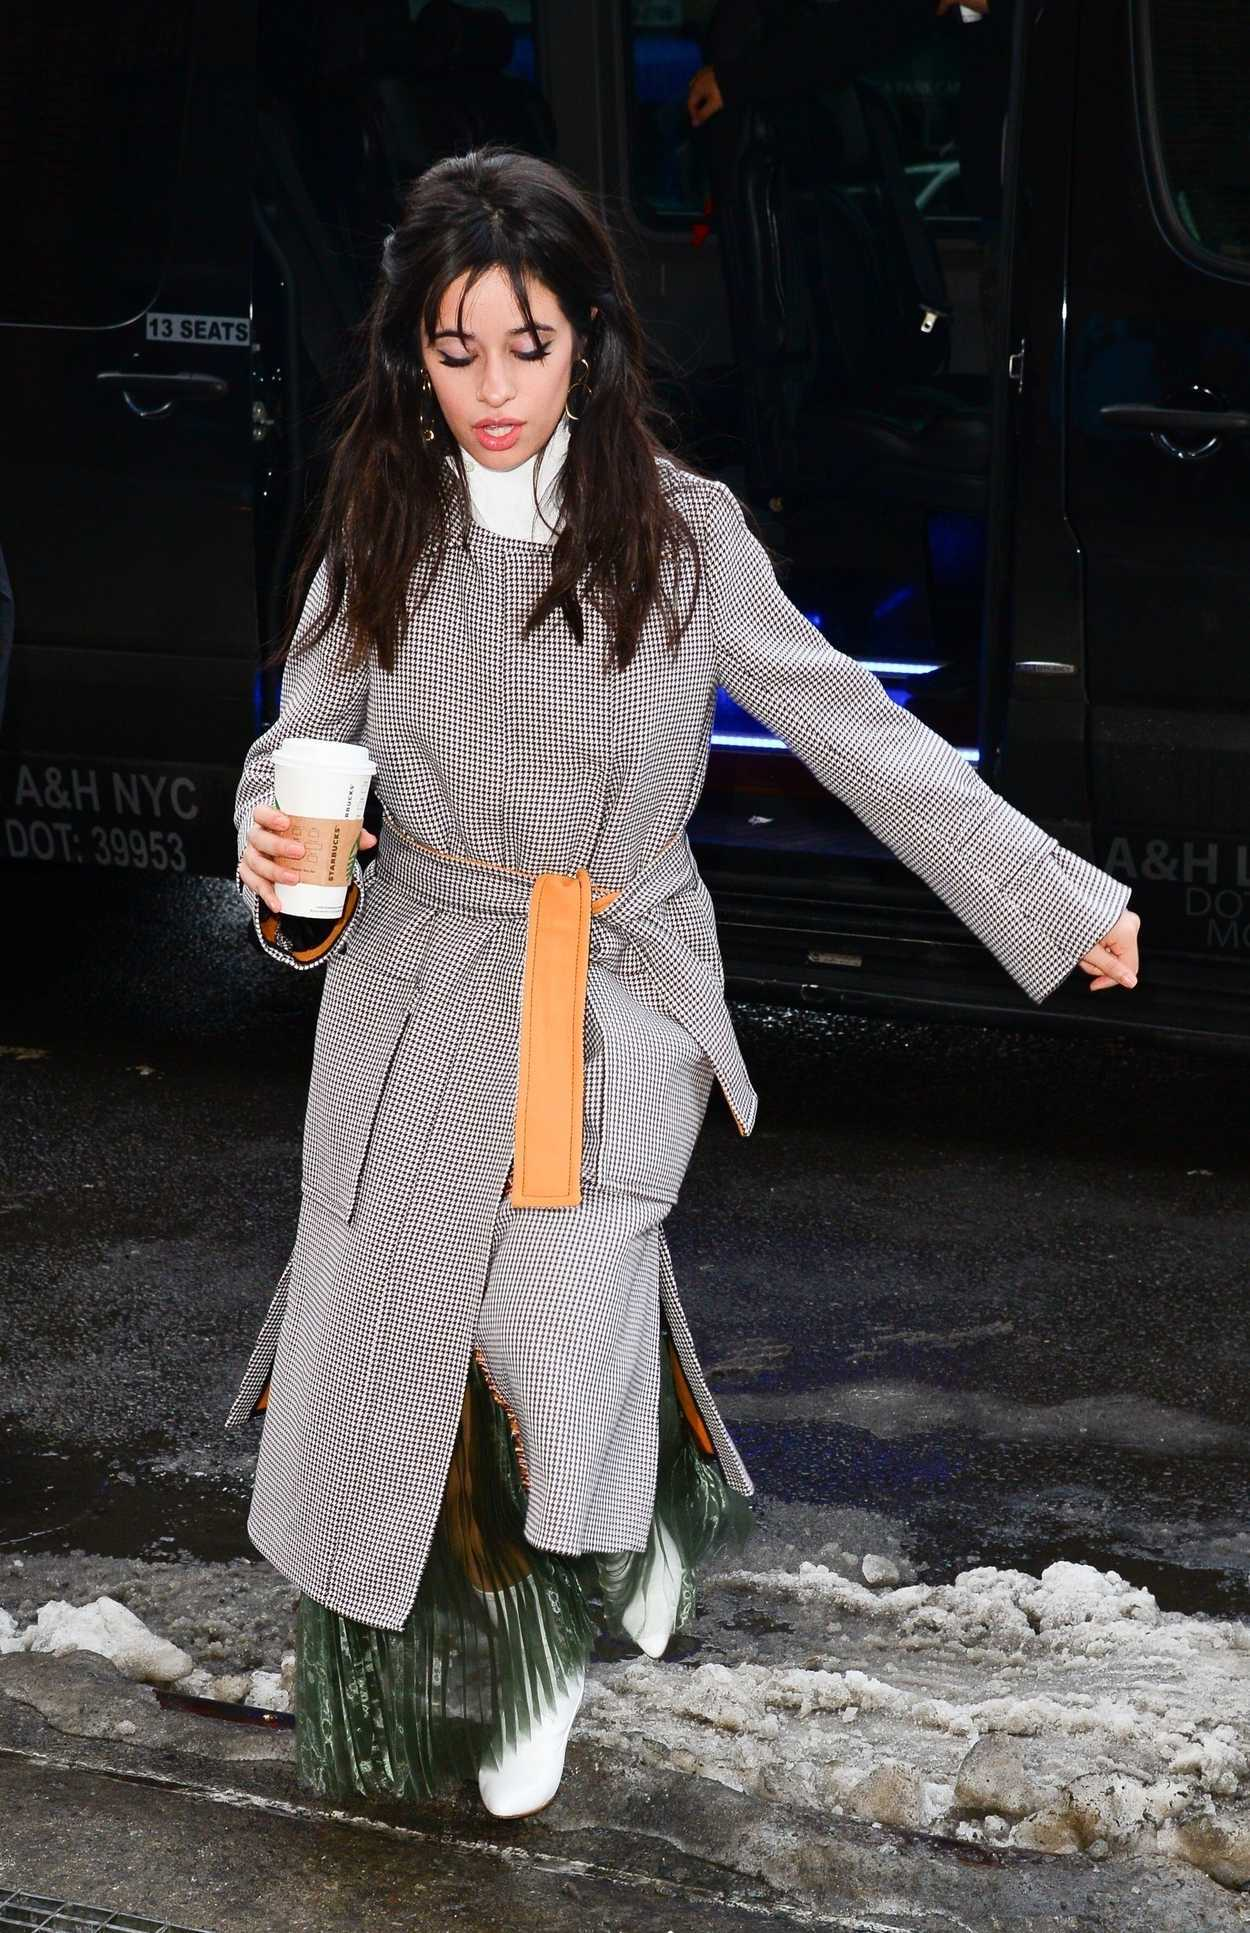 Camila Cabello Wears a Long Grey Coat Out in New York City ...